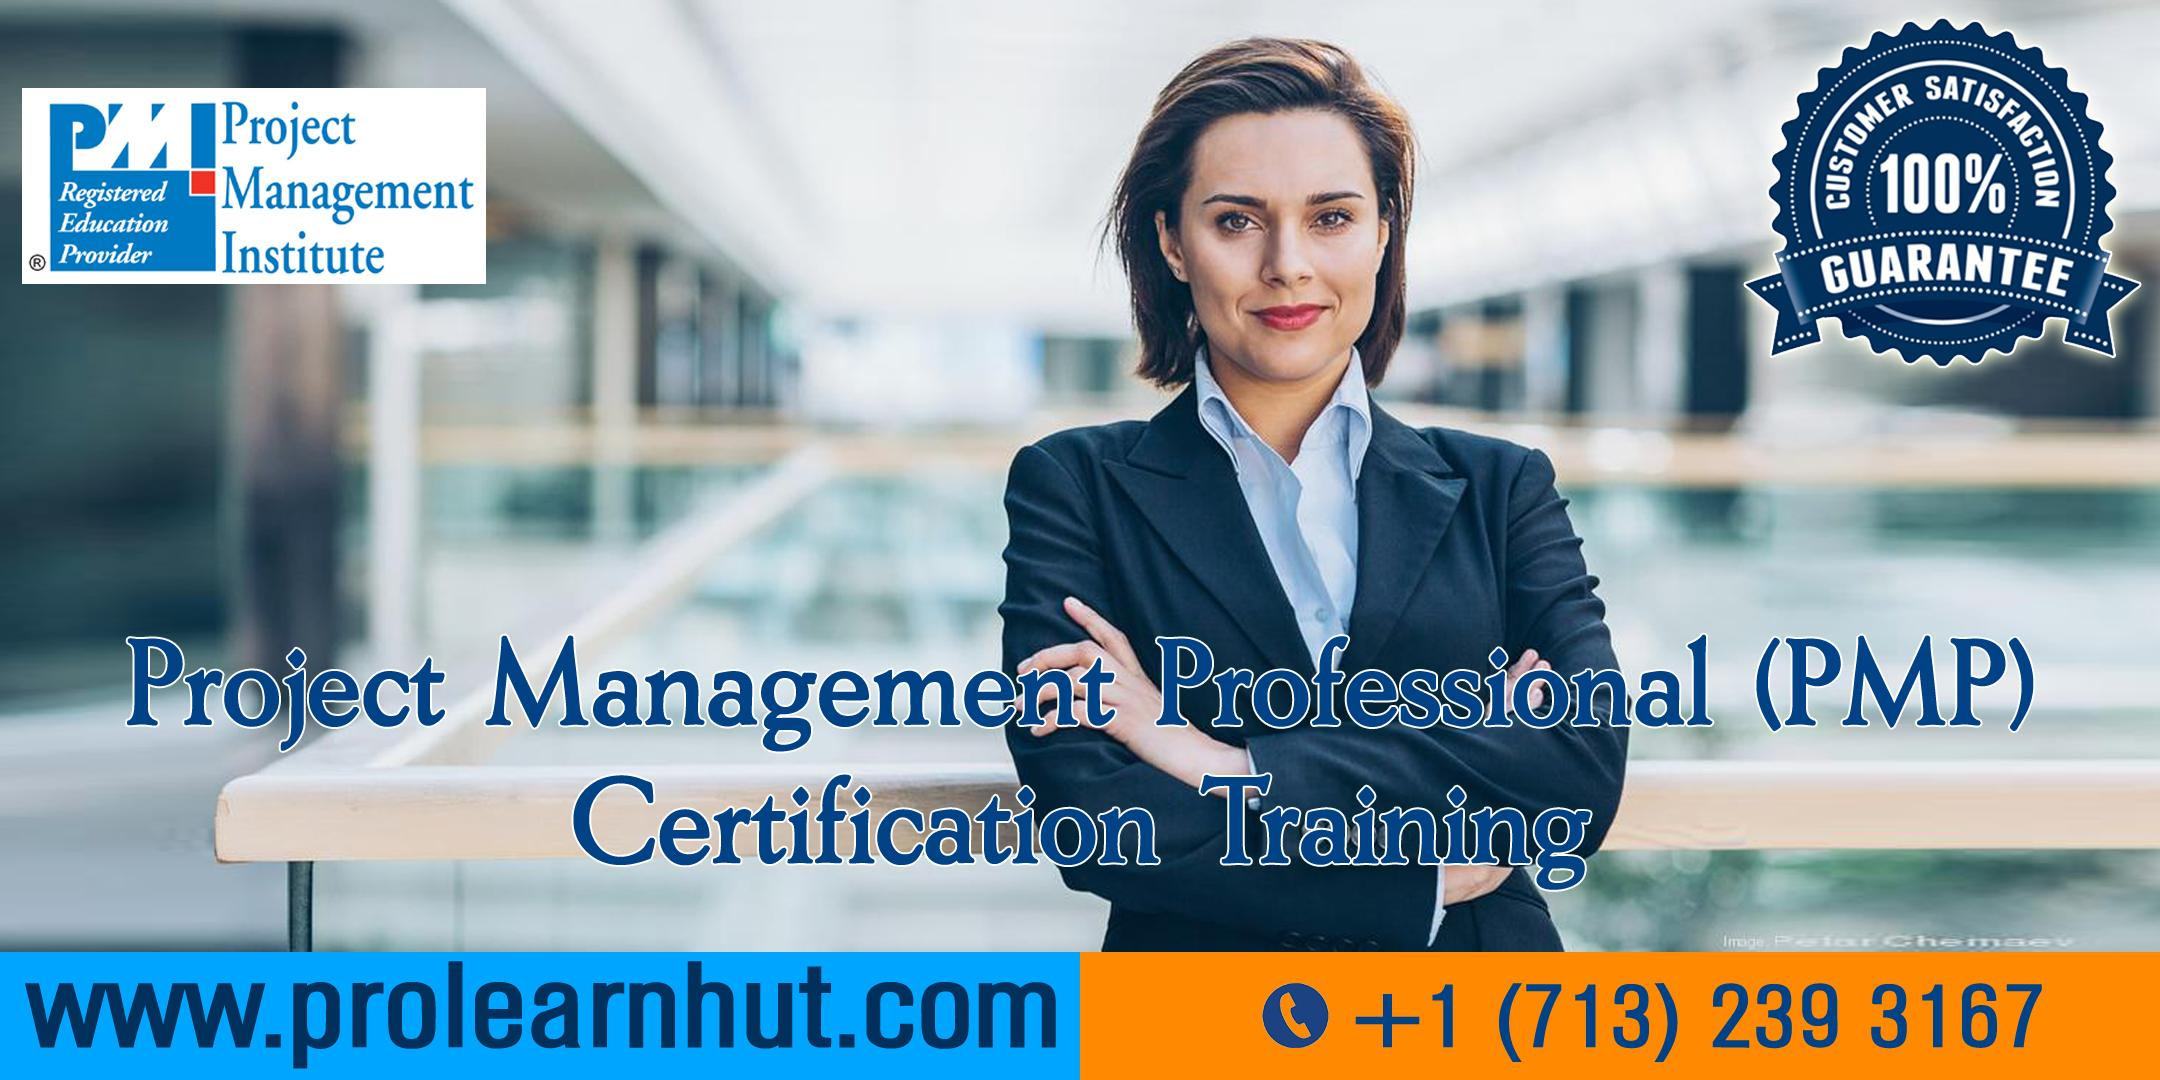 PMP Certification | Project Management Certification| PMP Training in San Diego, CA | ProLearnHut